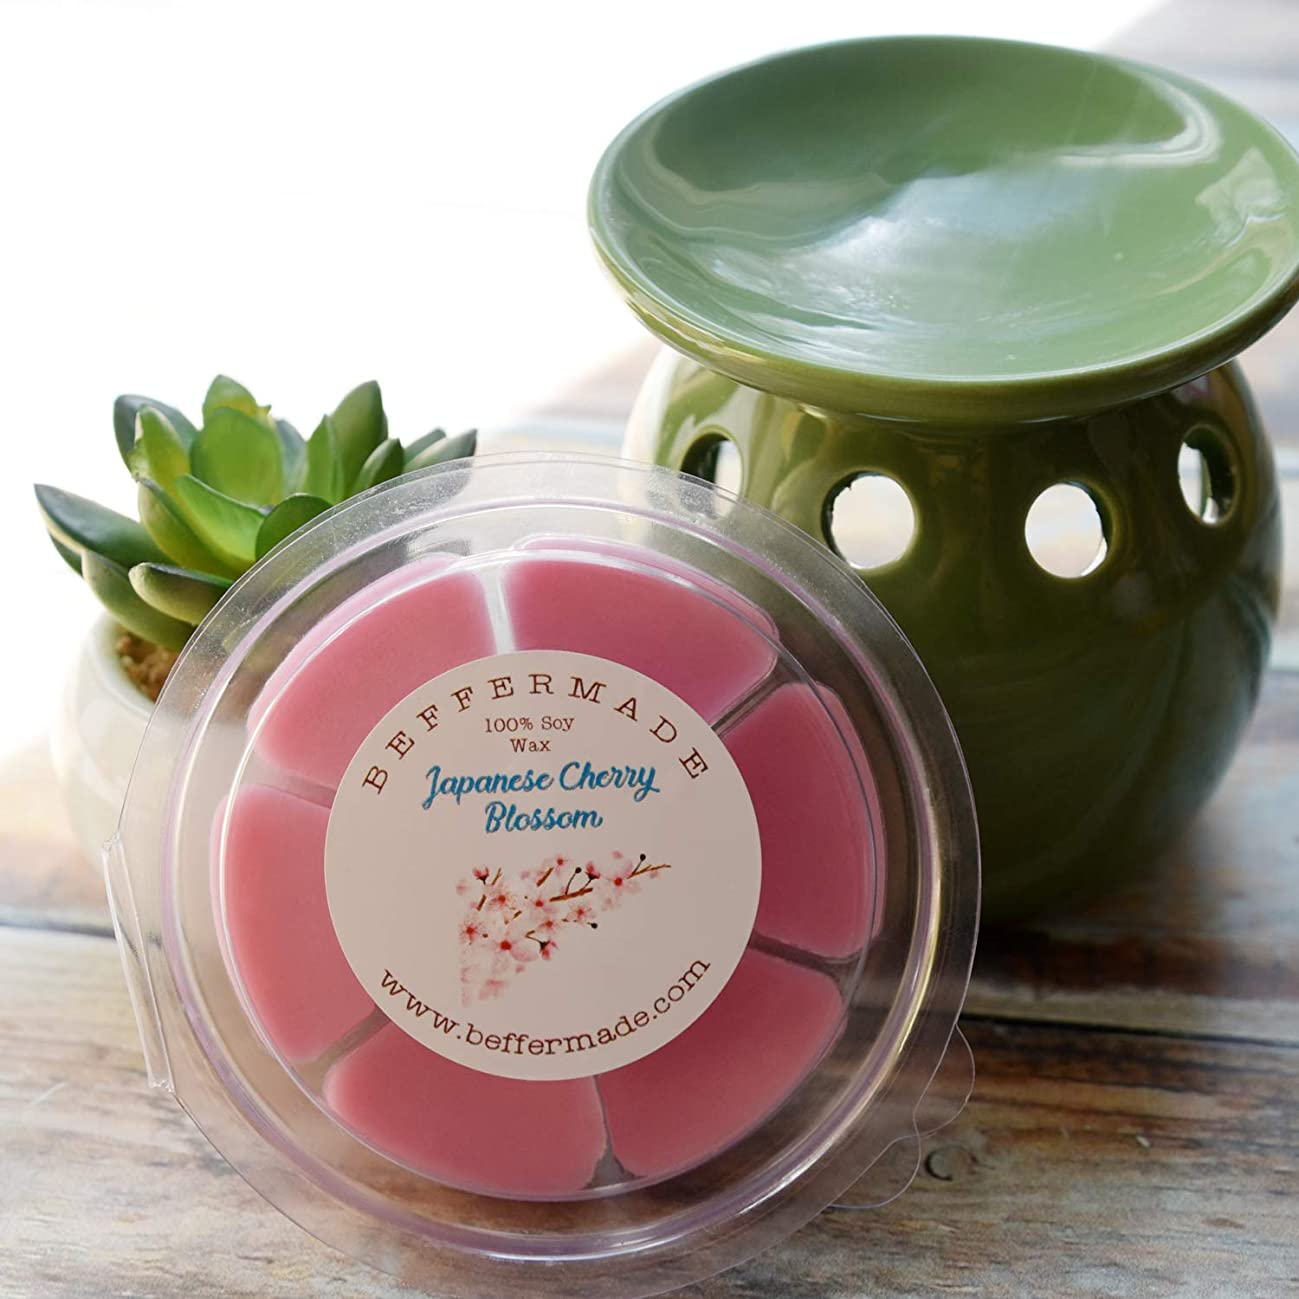 Japanese Cherry Blossom Wax Melts- pack of 6 petals